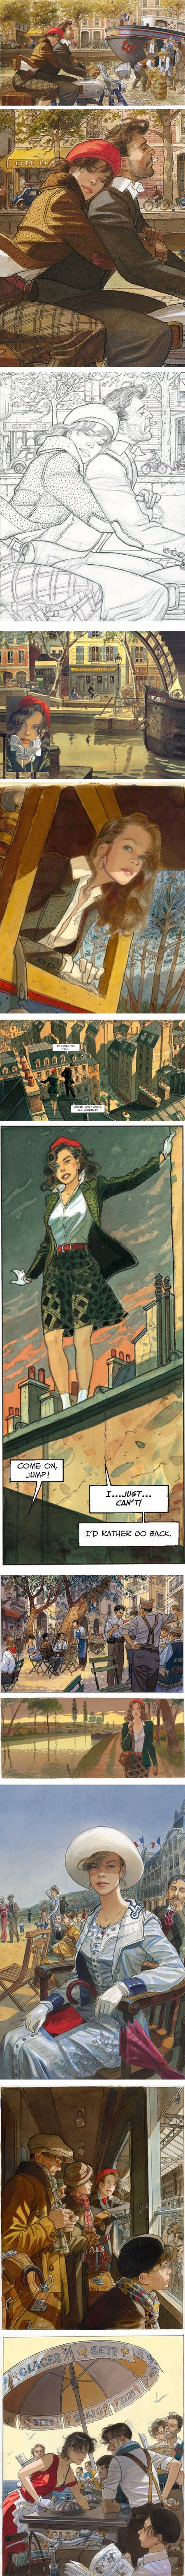 Jean-Pierre Gibrat, French comics artist, Flight of the Raven and others, bandes dessinées